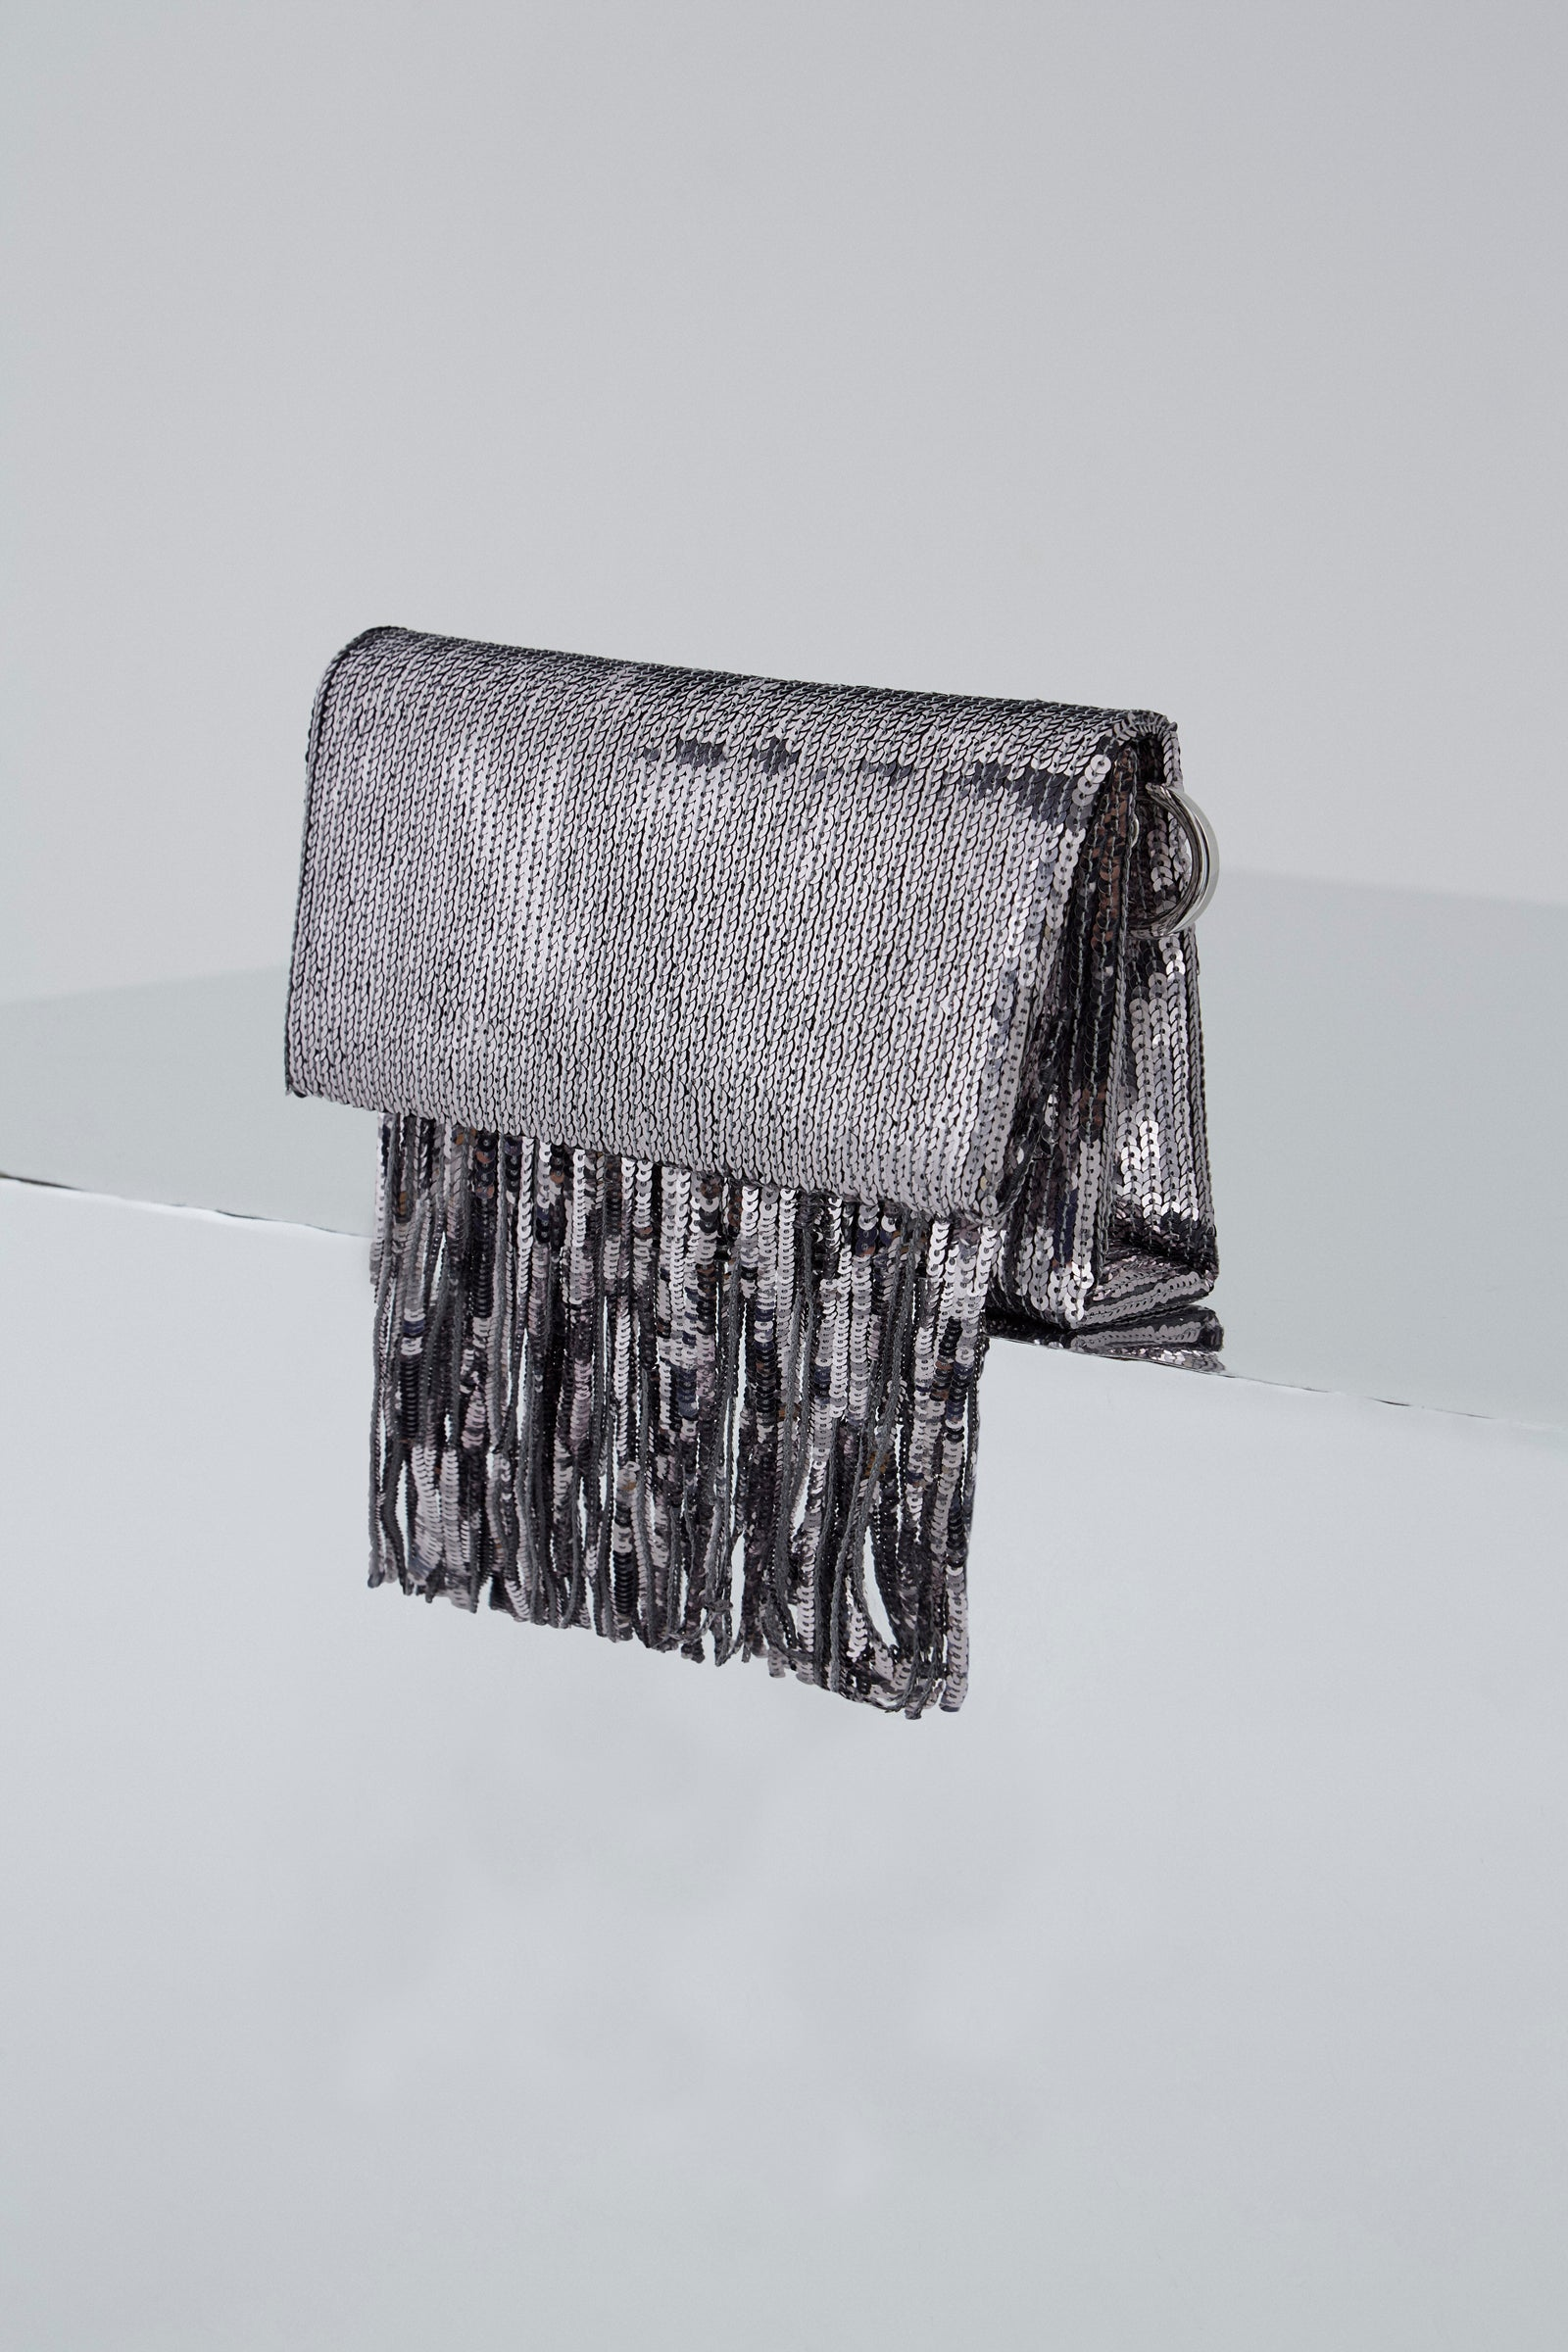 Galvan London Stardust Fringe Clutch - Steel